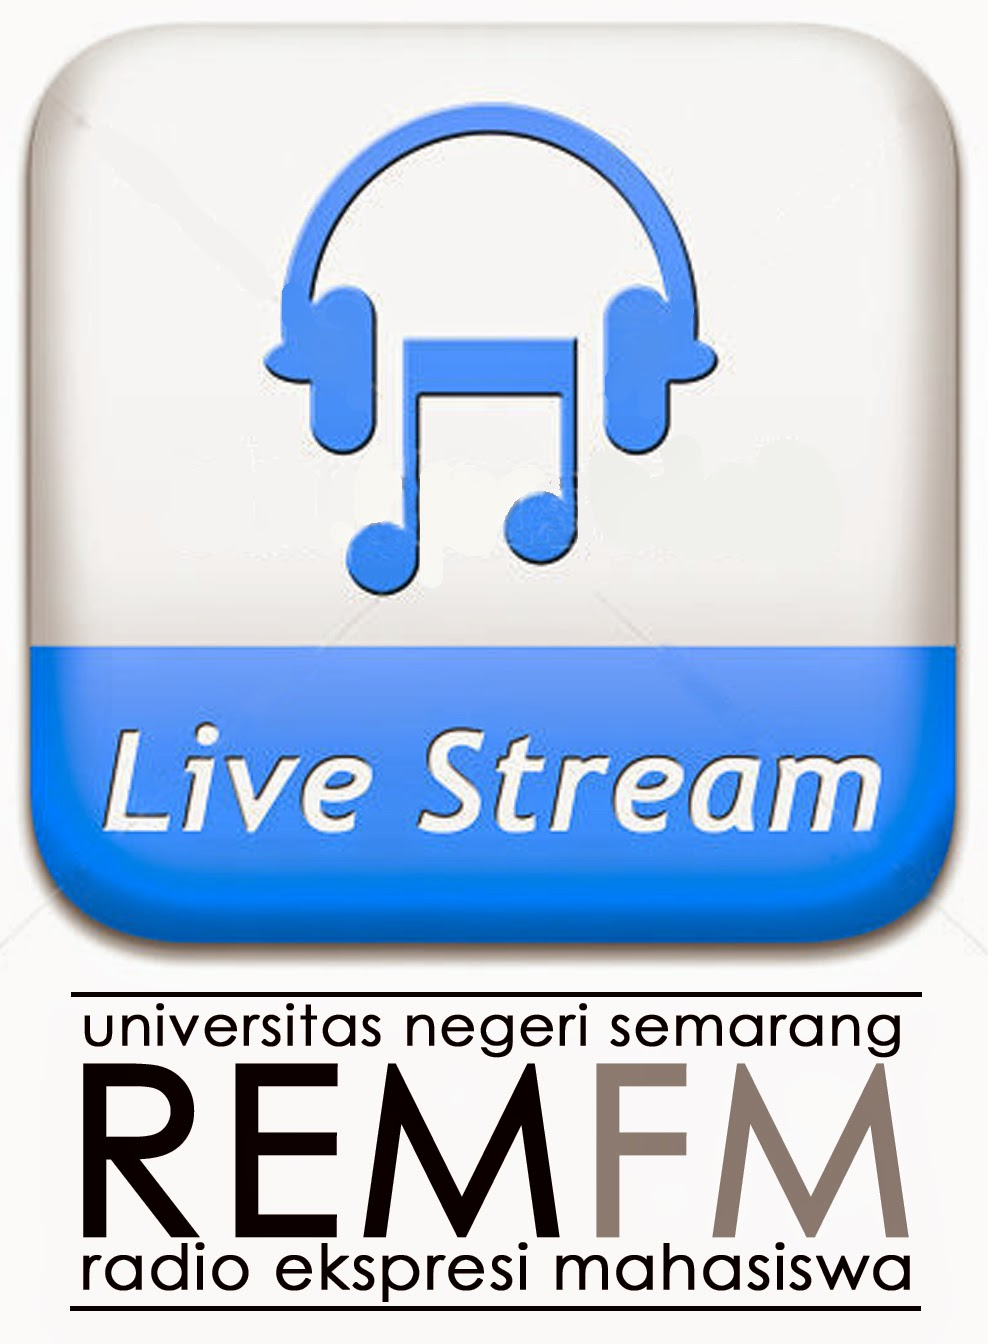 Live Streaming REMFM